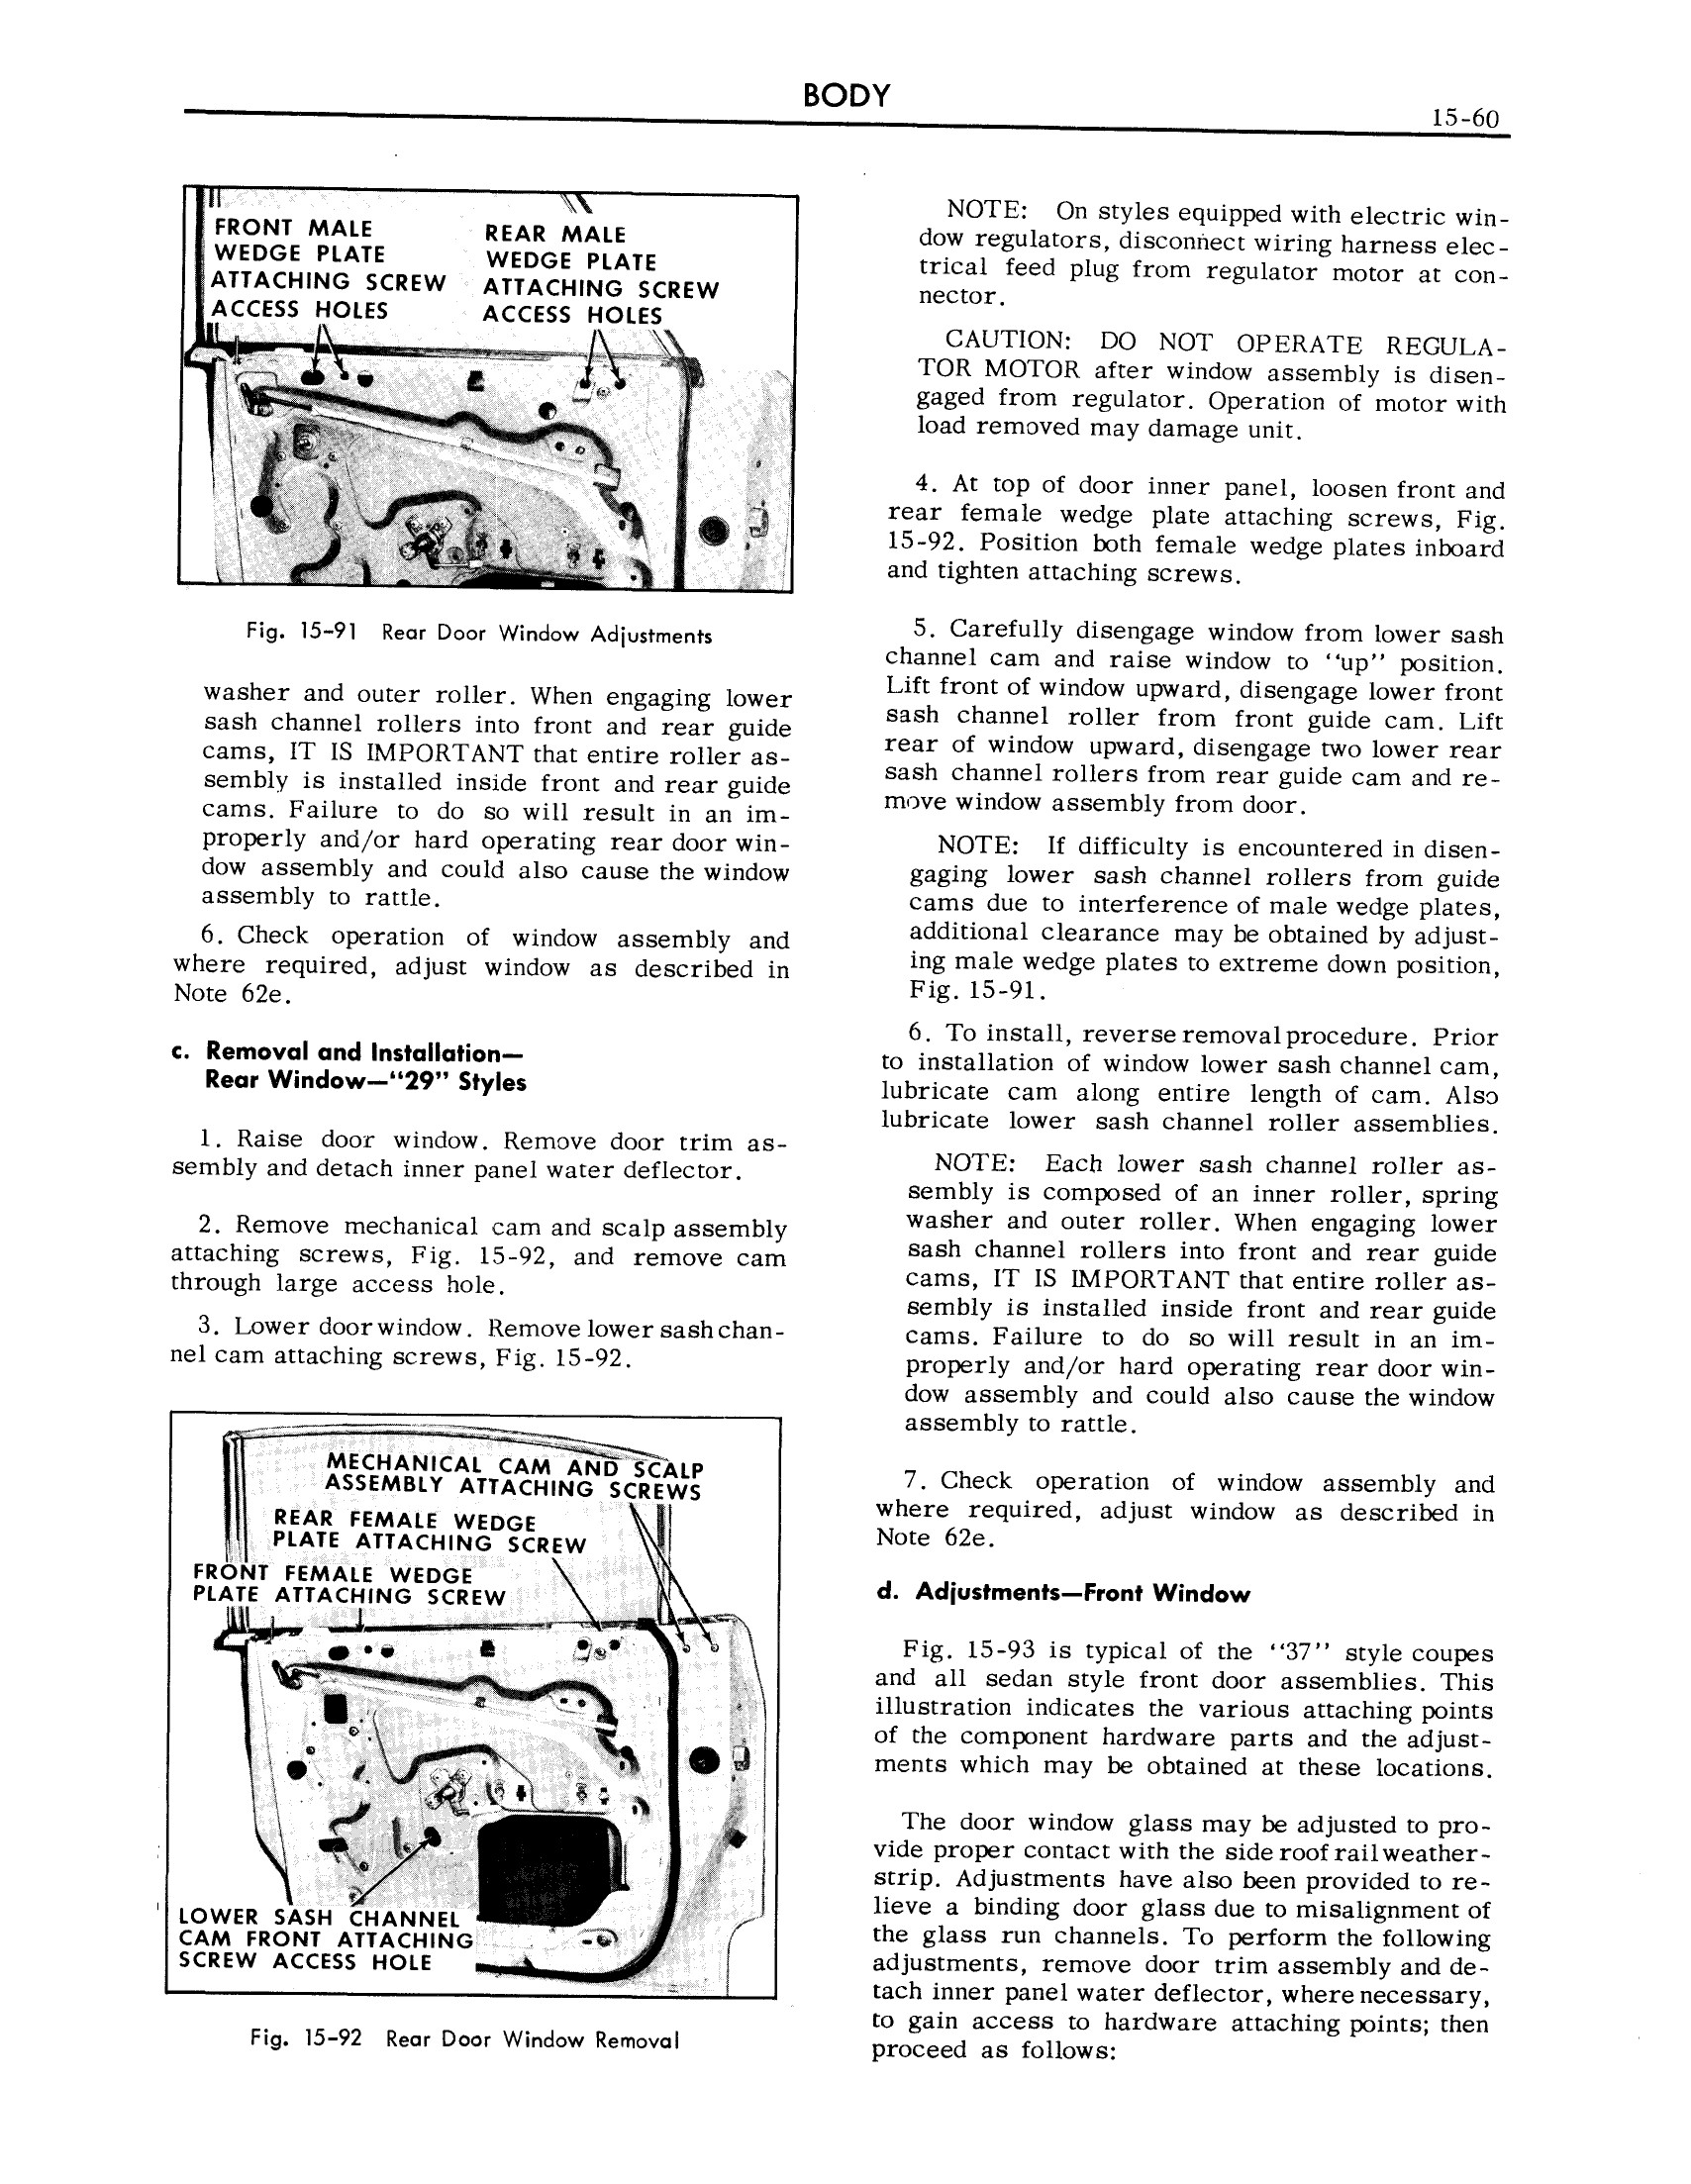 1959 Cadillac Shop Manual- Body Page 60 of 99